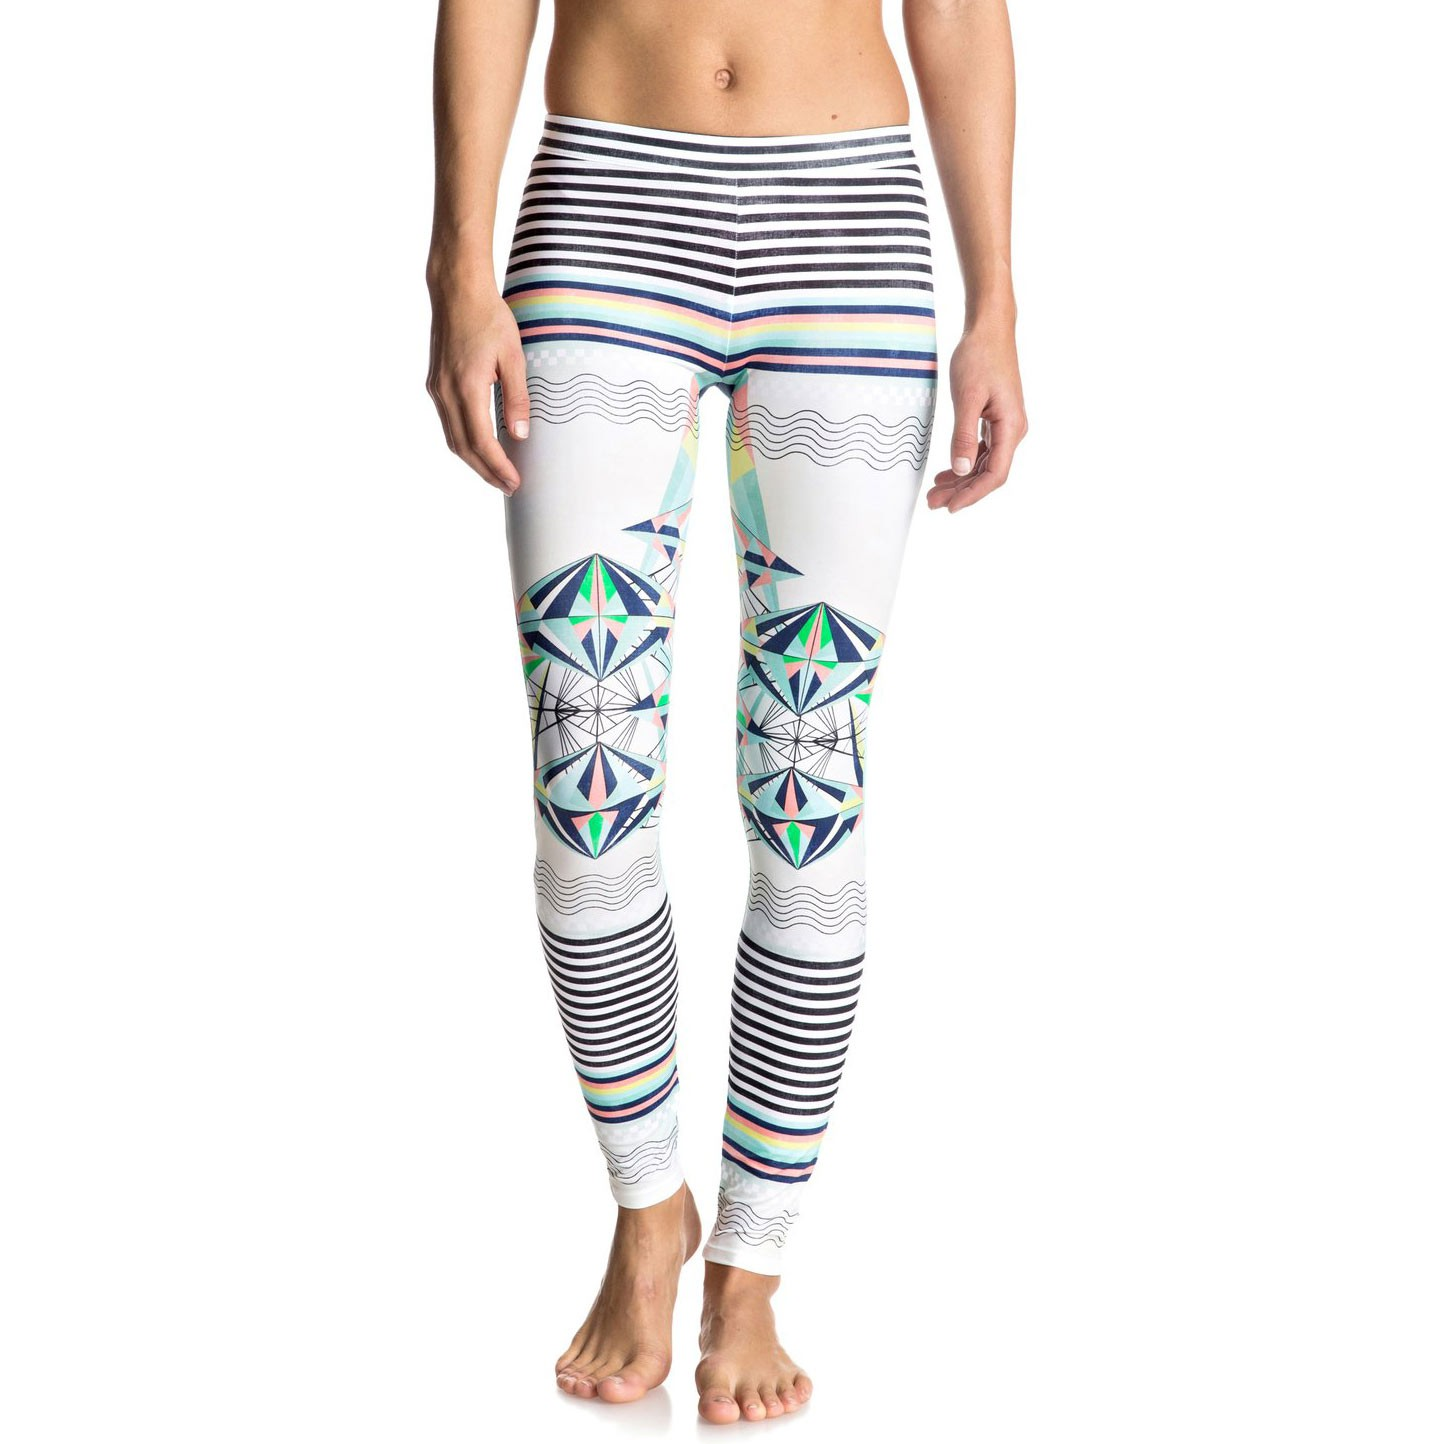 Lycra Roxy Keep It Roxy Surf Legging marshmallow psyche palm repeat